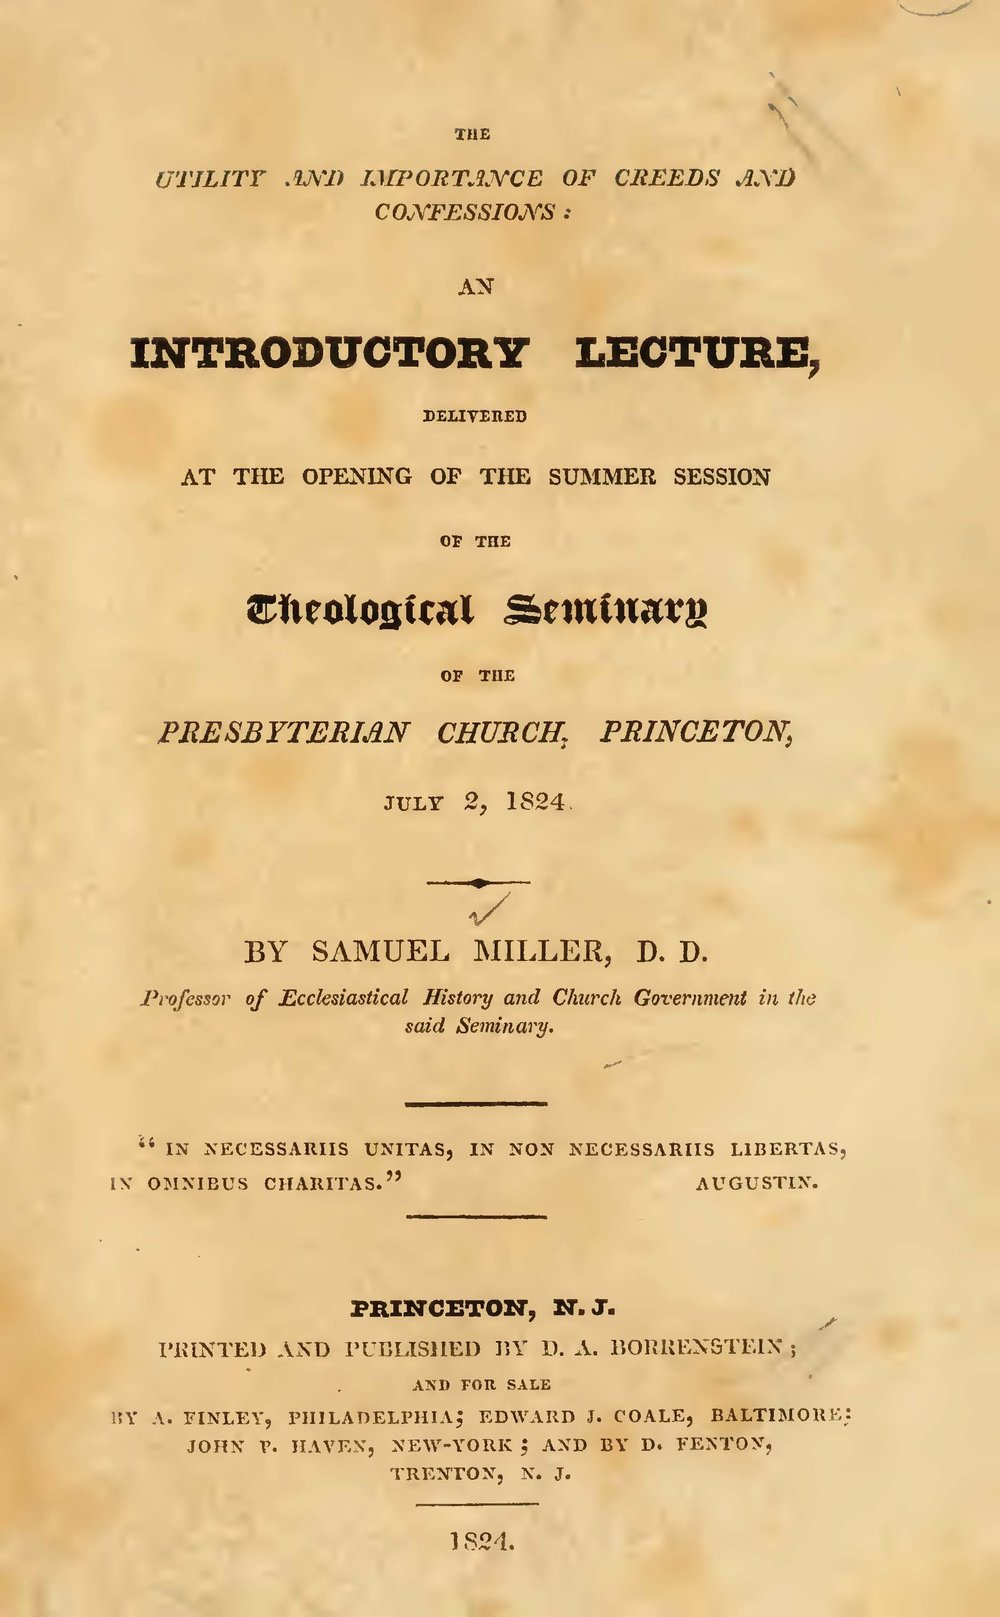 Miller, Samuel, The Utility and Importance of Creeds and Confessions Title Page.jpg